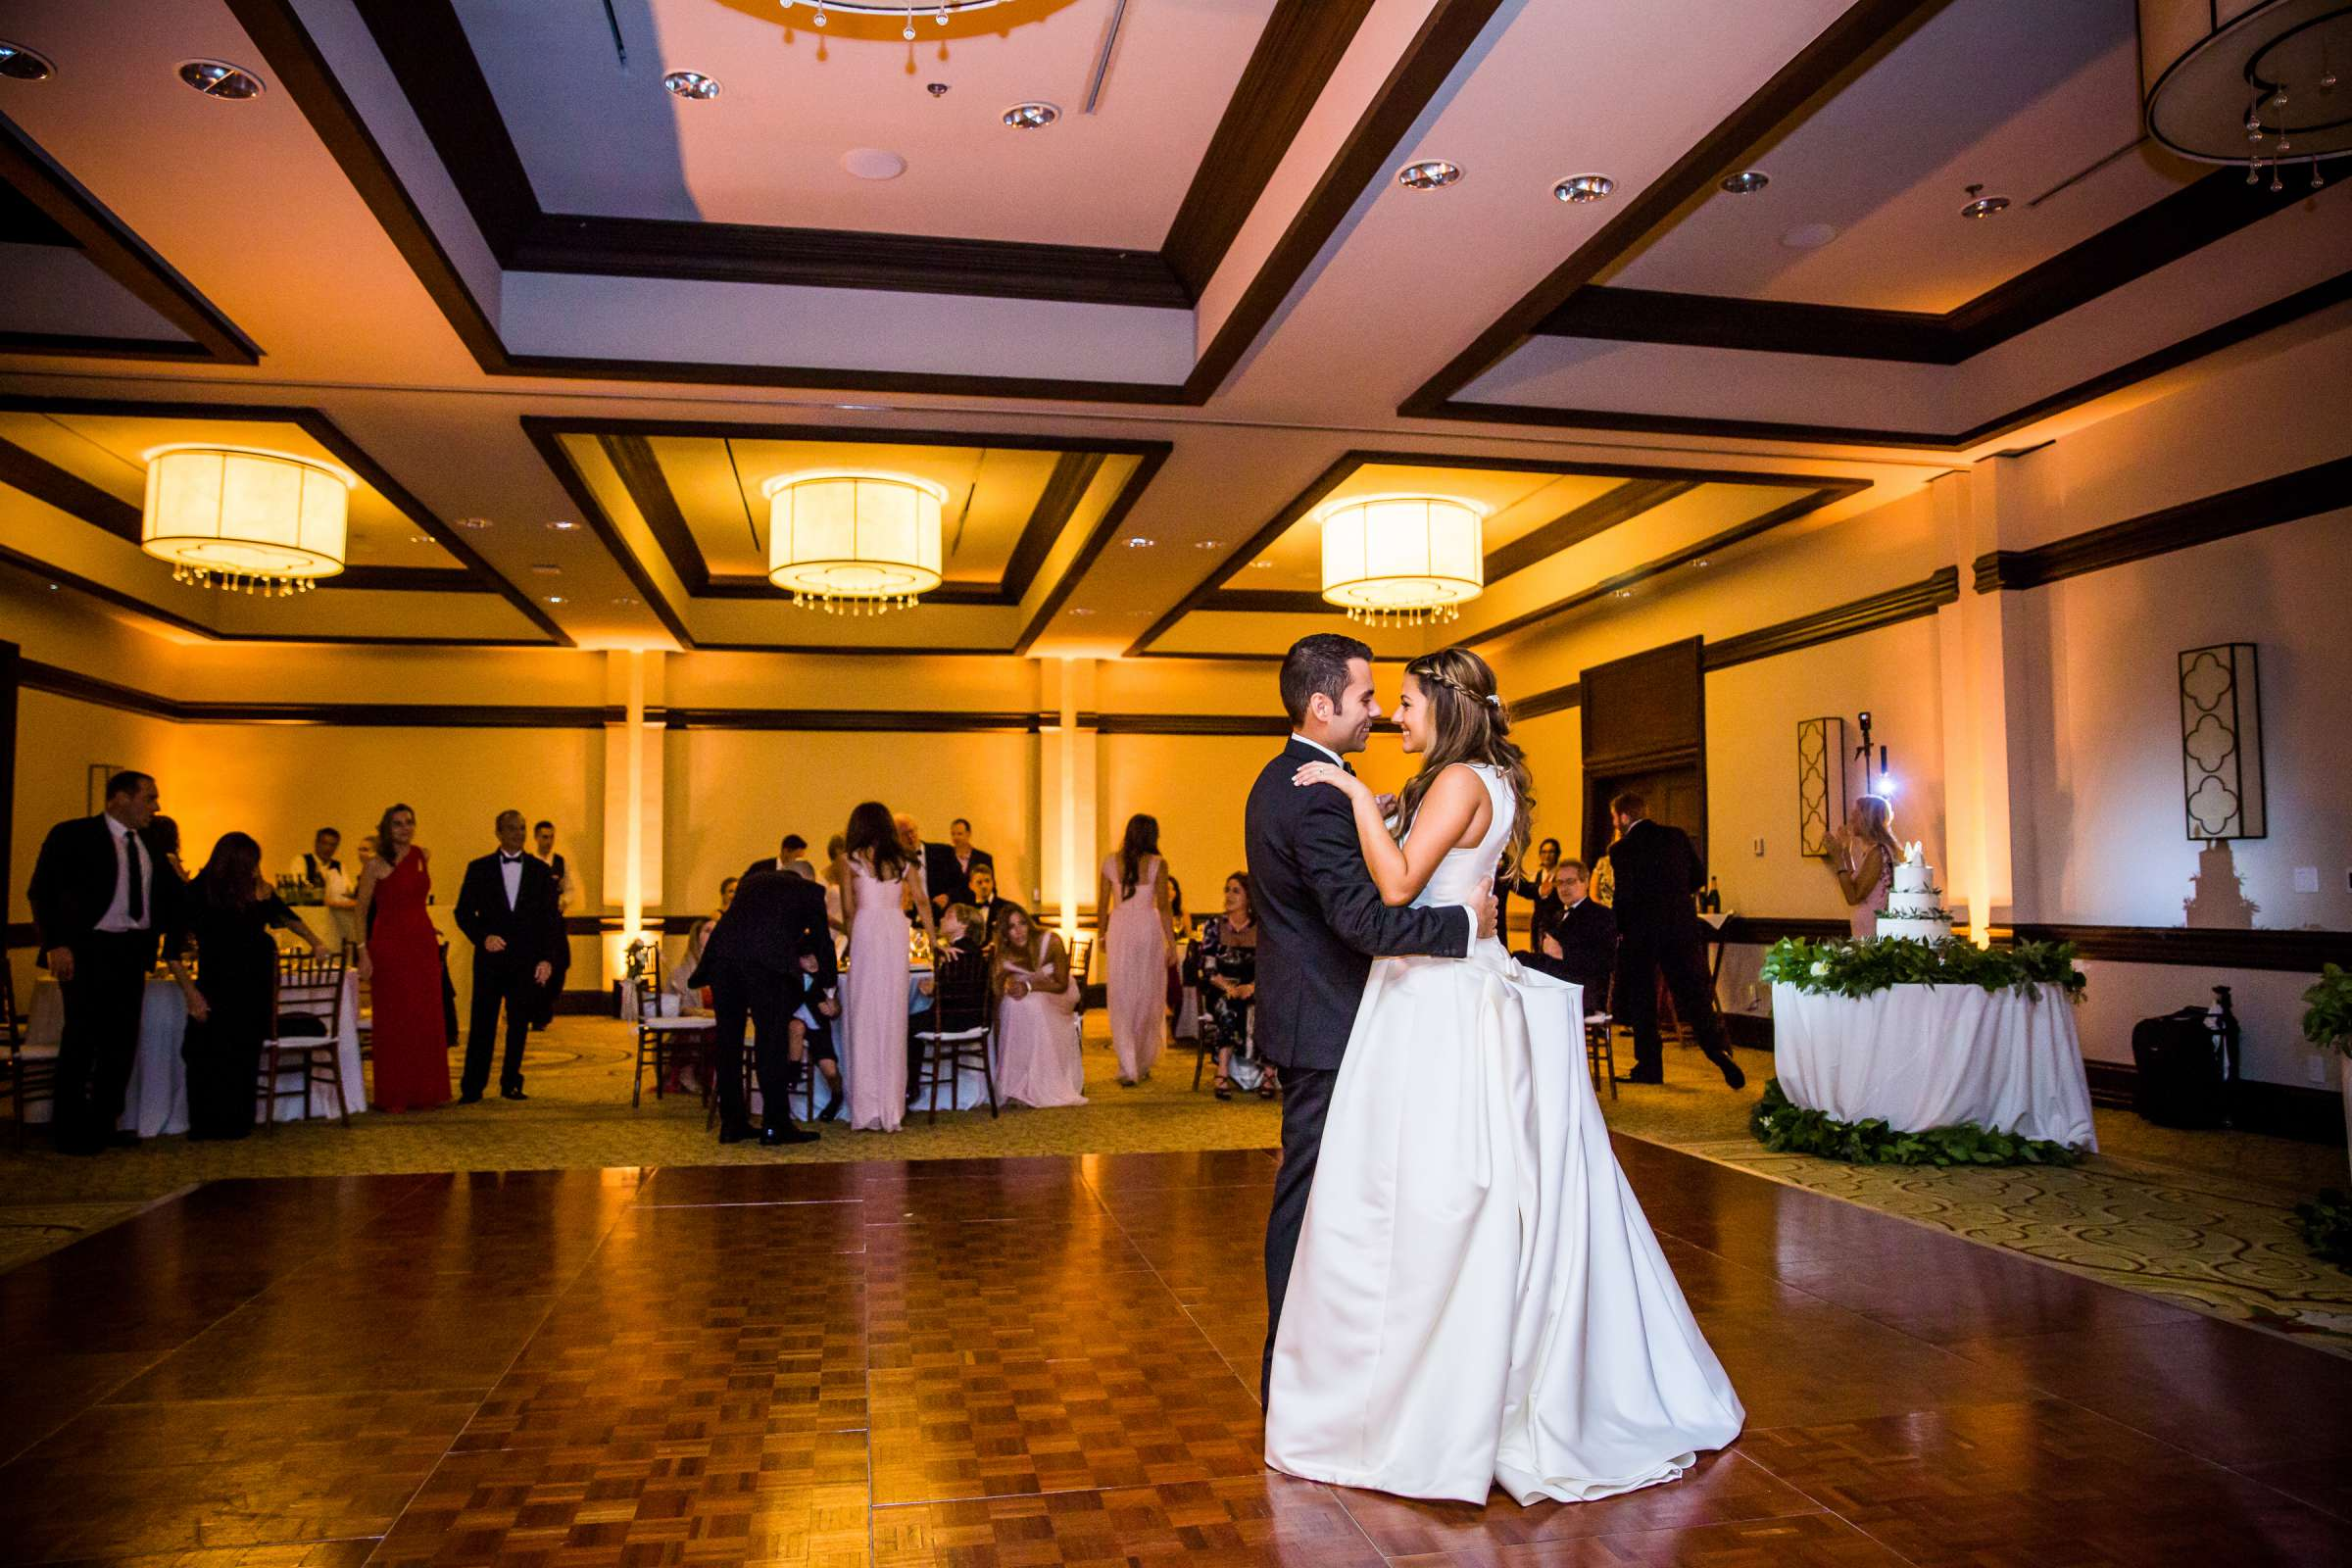 Rancho Bernardo Inn Wedding coordinated by Très Chic Events, Stefania and Nicholas Wedding Photo #58 by True Photography